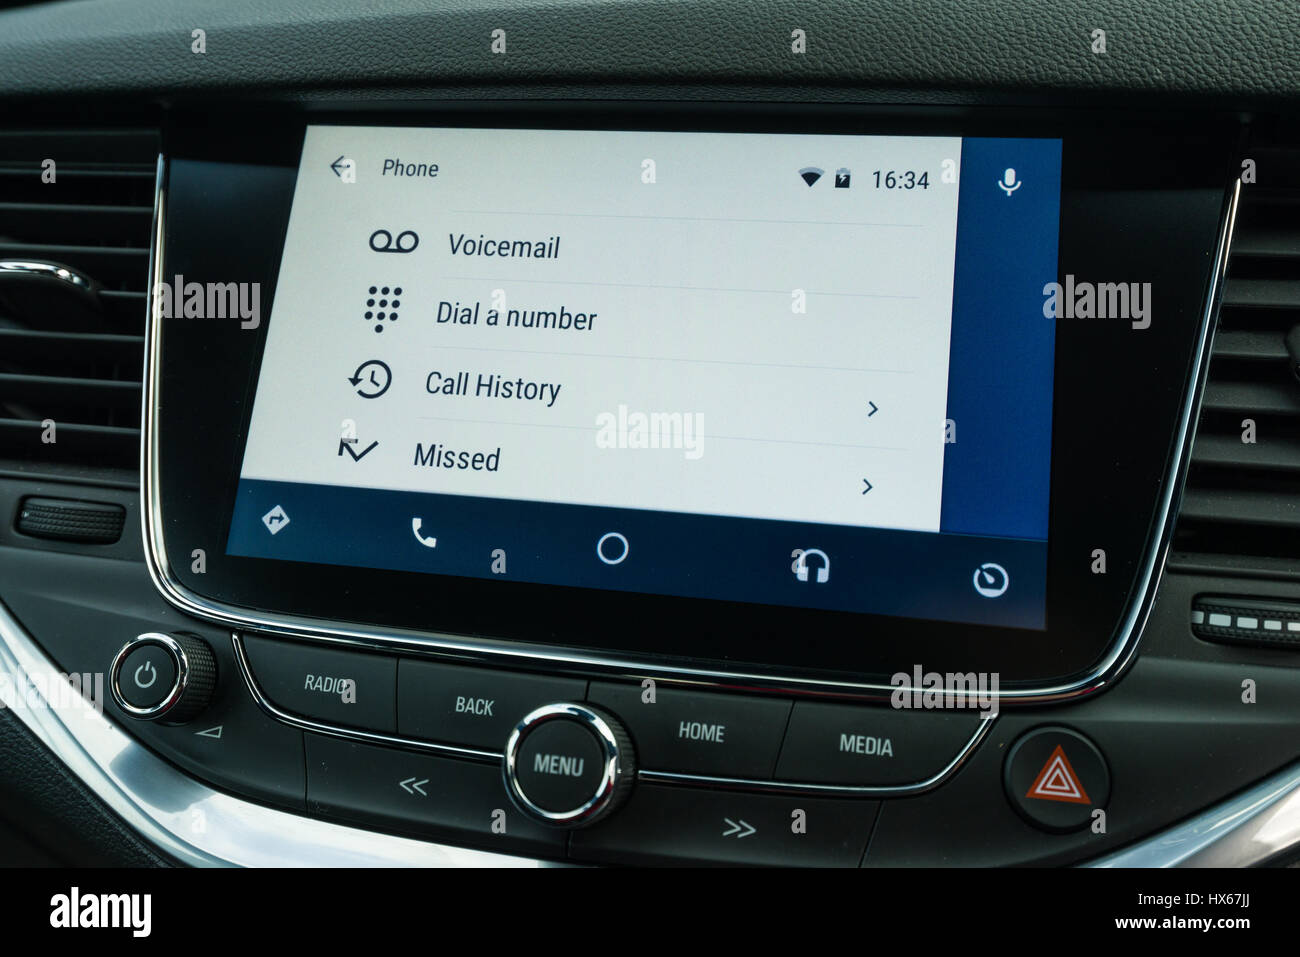 Android Auto Car Vehicle Navigation Interface Showing Phone Interface Options - Stock Image